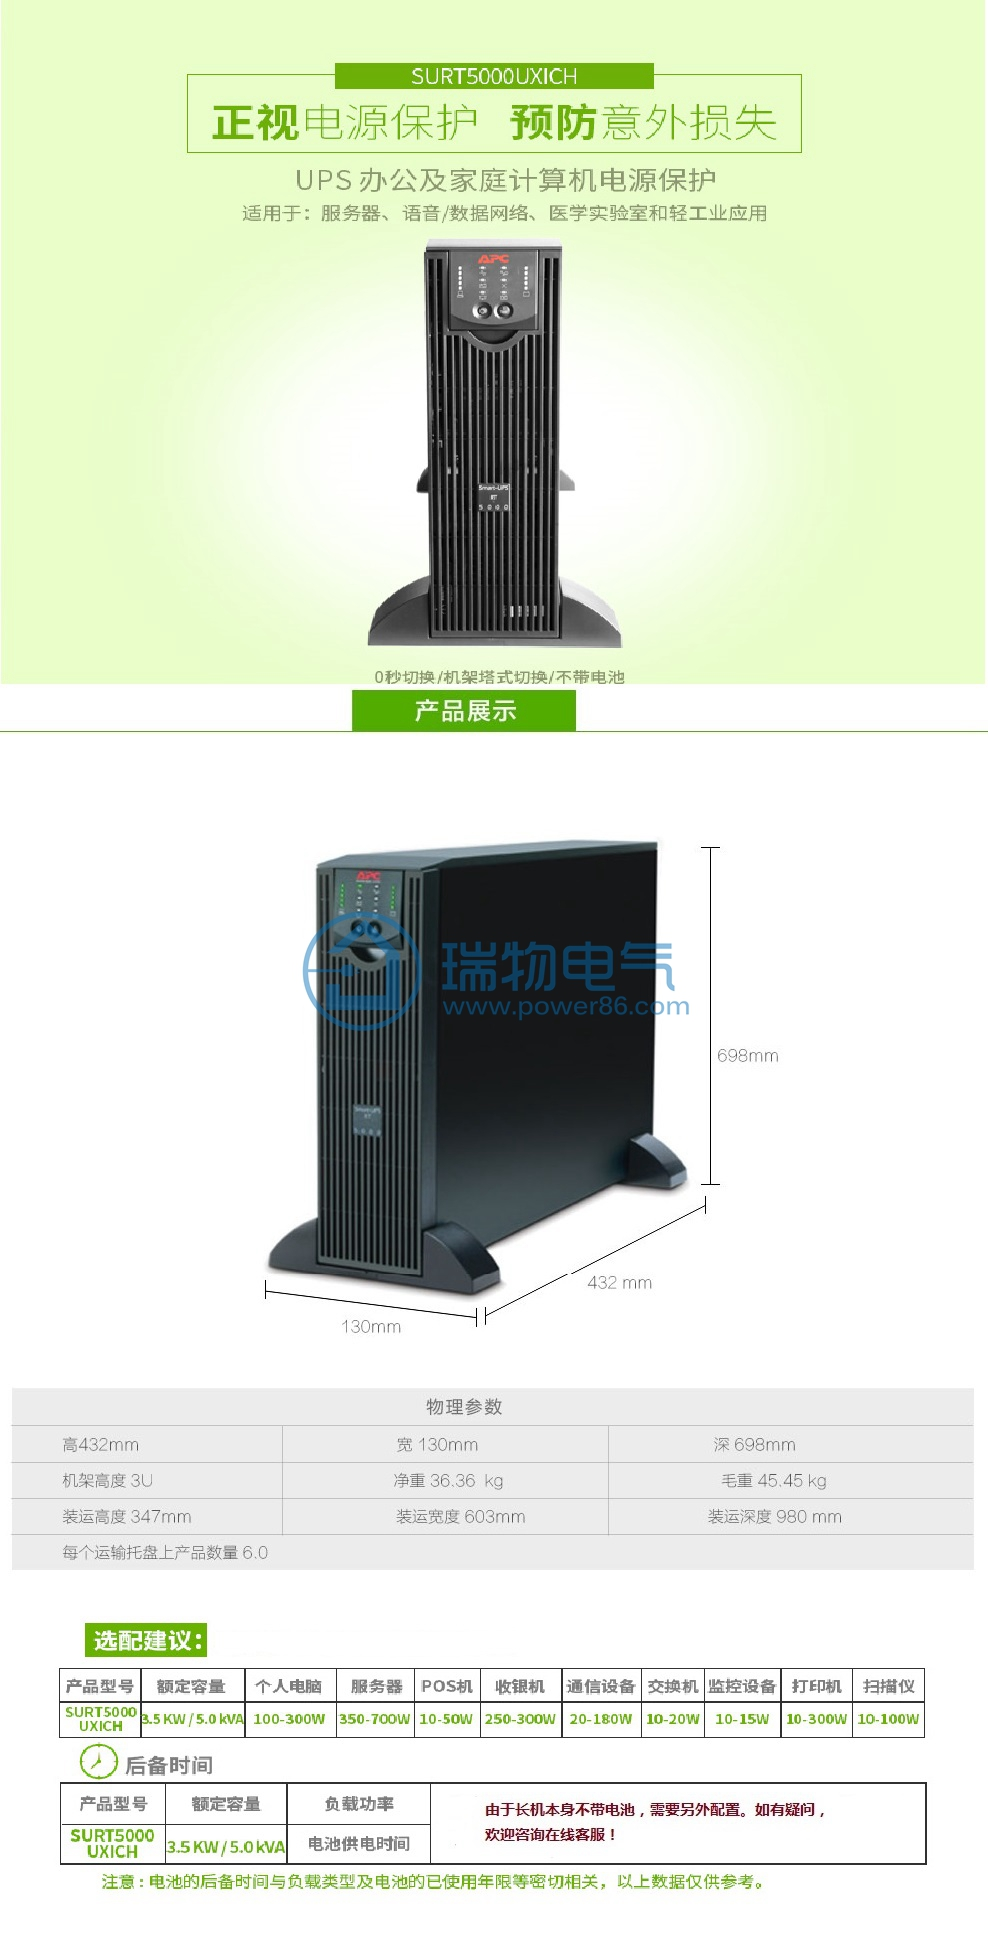 产品介绍http://www.power86.com/rs1/ups/14/132/77/77_c0.jpg